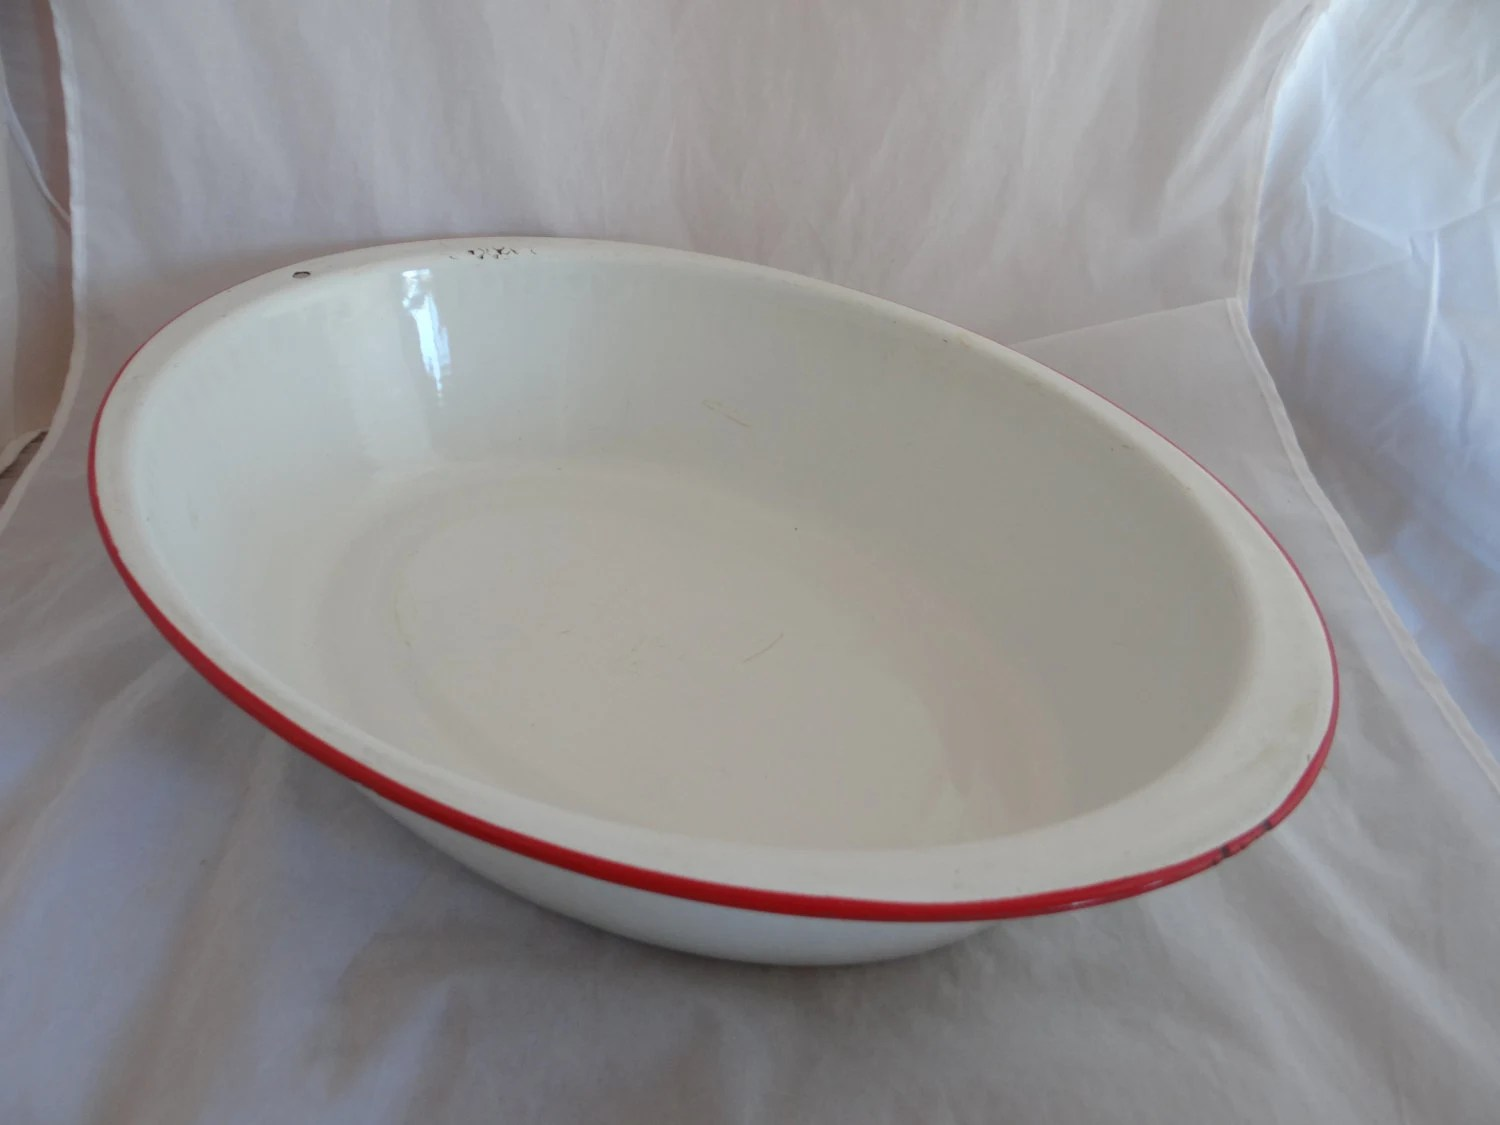 Vintage Large Enamel Porcelain Metal Wash Basin In White With